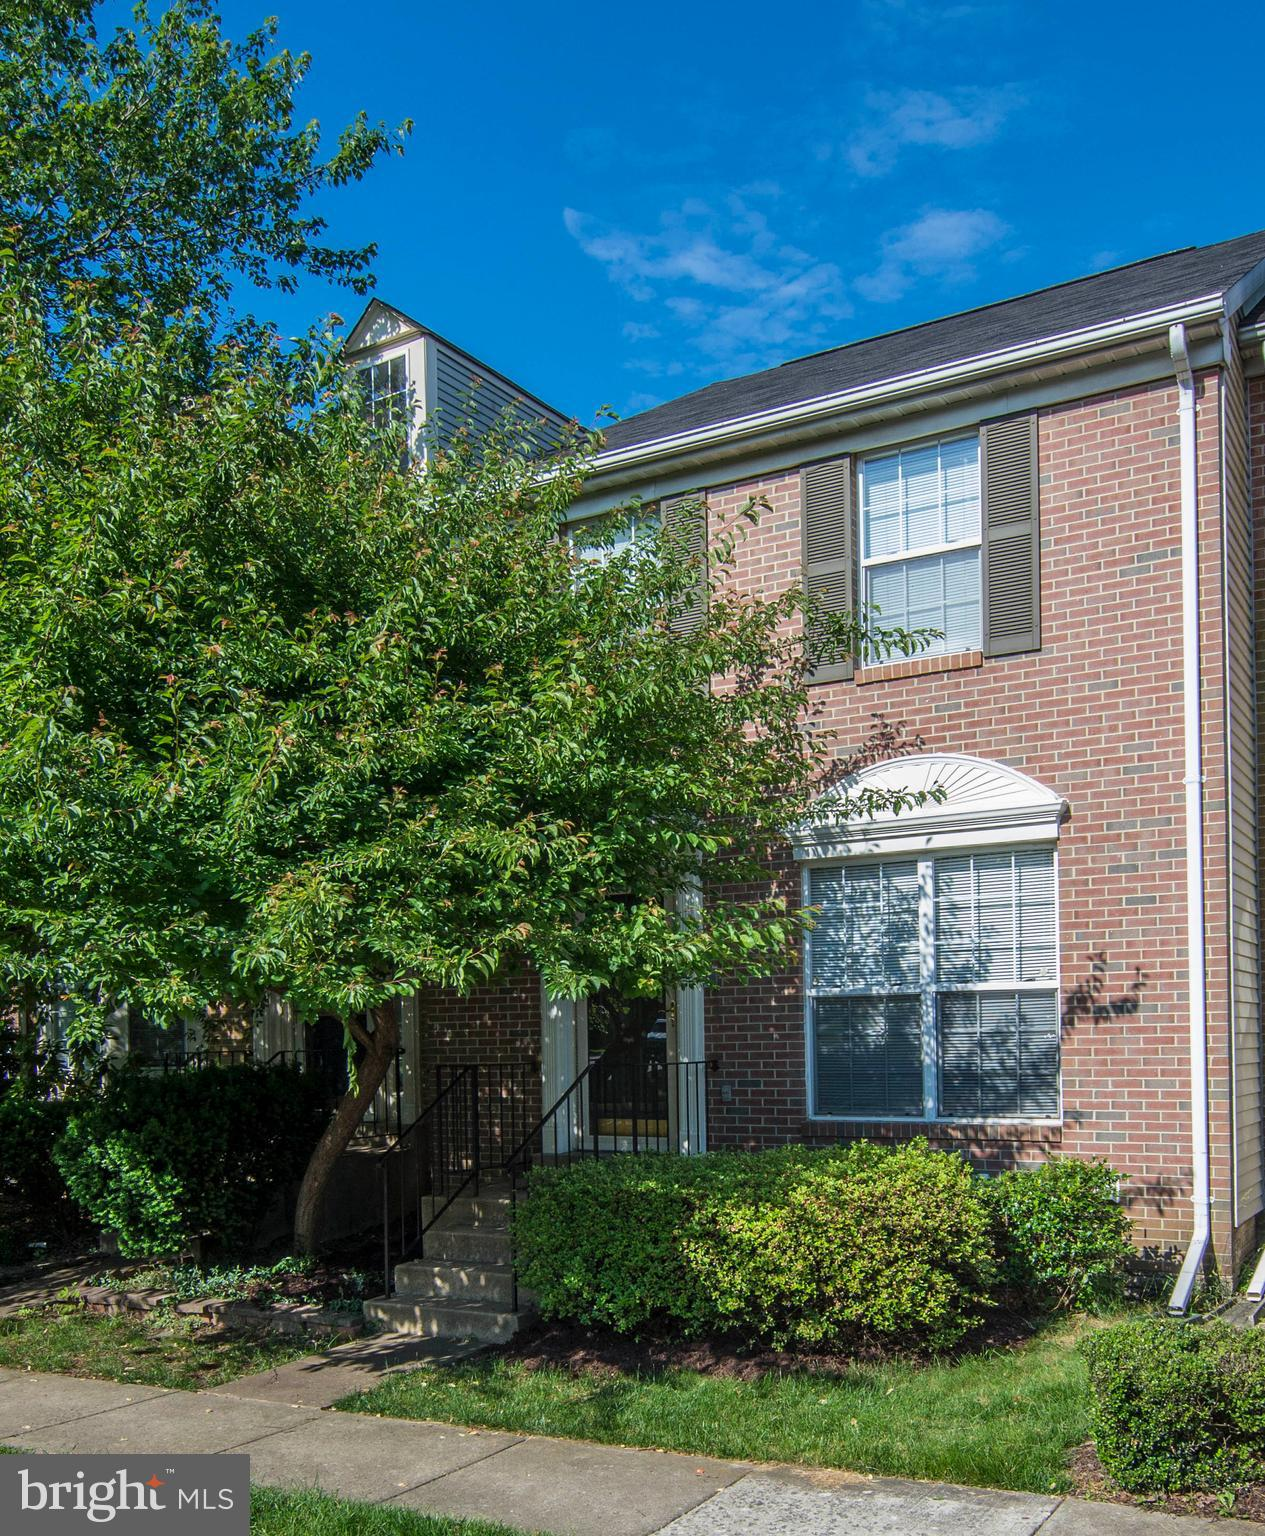 3 level, 3BR, 2Full bath 2 half Bath townhome in Kingstowne Hrdwd fl in kitchen,foyer breakfast area;LR/DR carpeted, crown moulding, chair rail.MBR w/vaulted ceiling,Fenced back Yard. Deck off breakfast area. Close to Spfd Metro, Wegmans, shopping and restaurants. Sold As Is Priced for the Buyer who wants to put there personal touches on finishes.